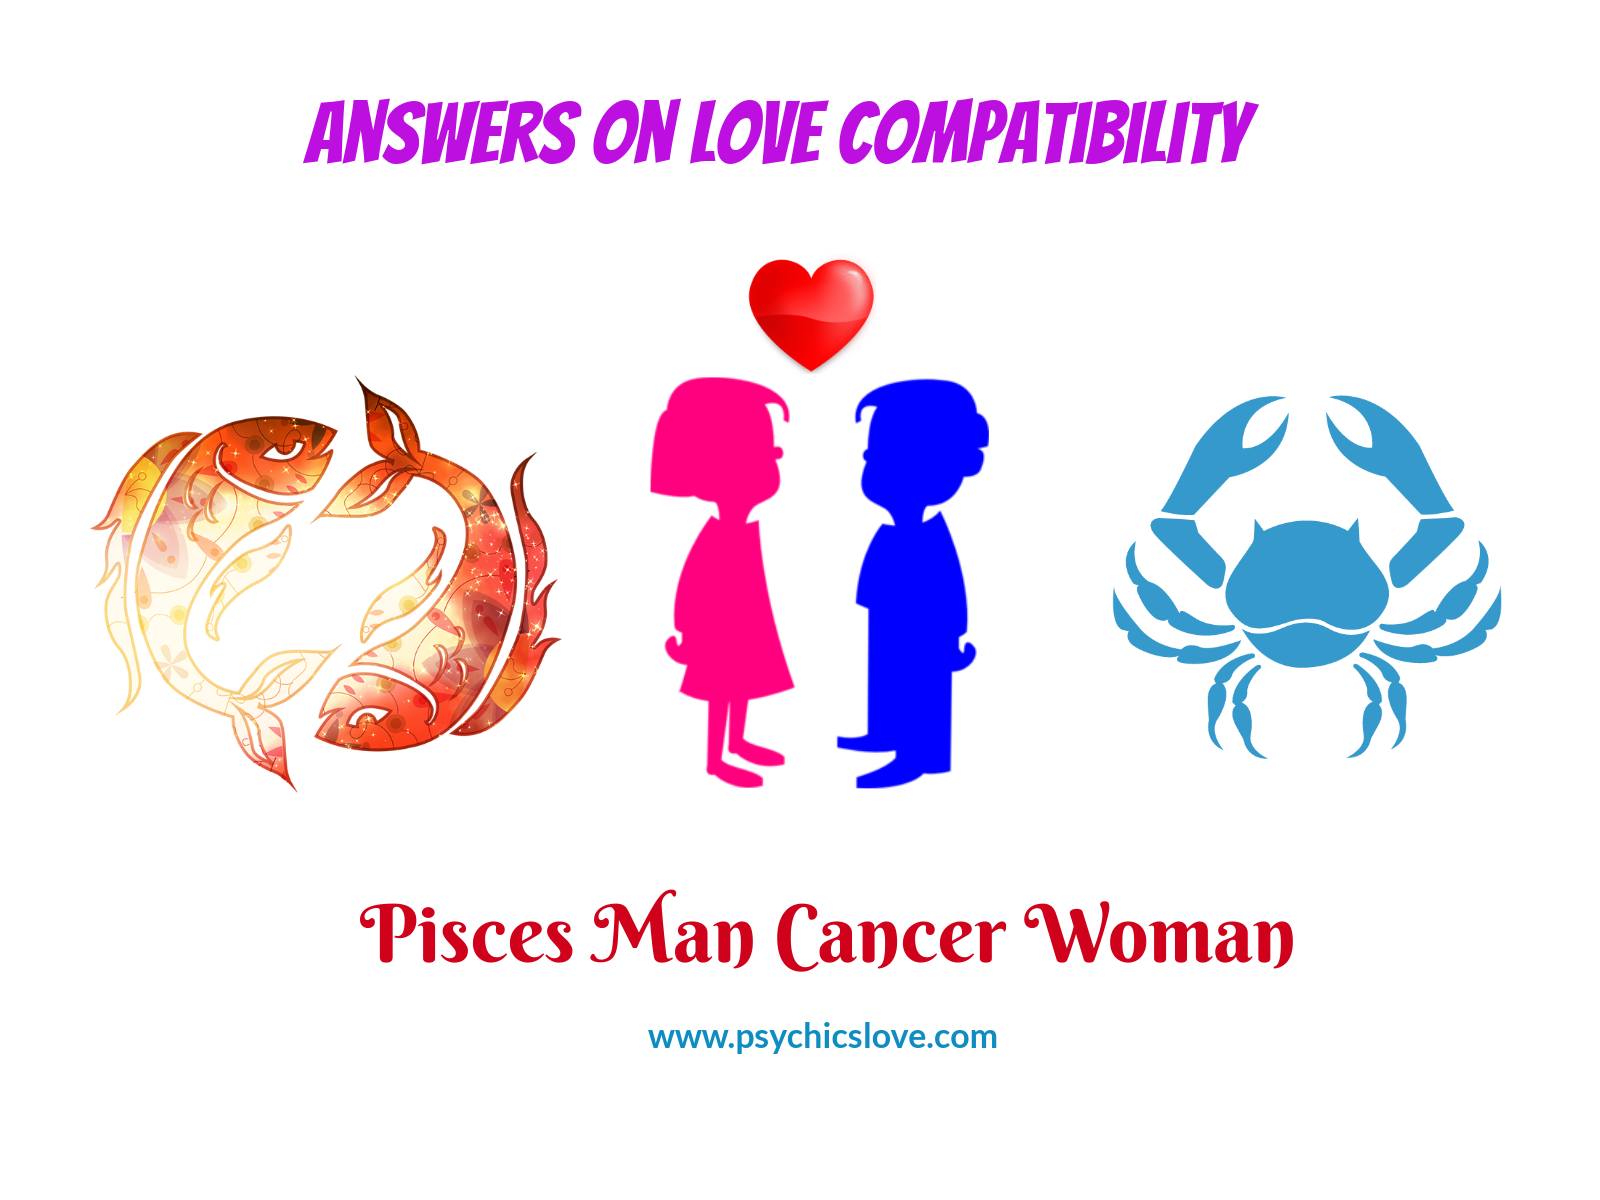 Pisces Man Cancer Woman